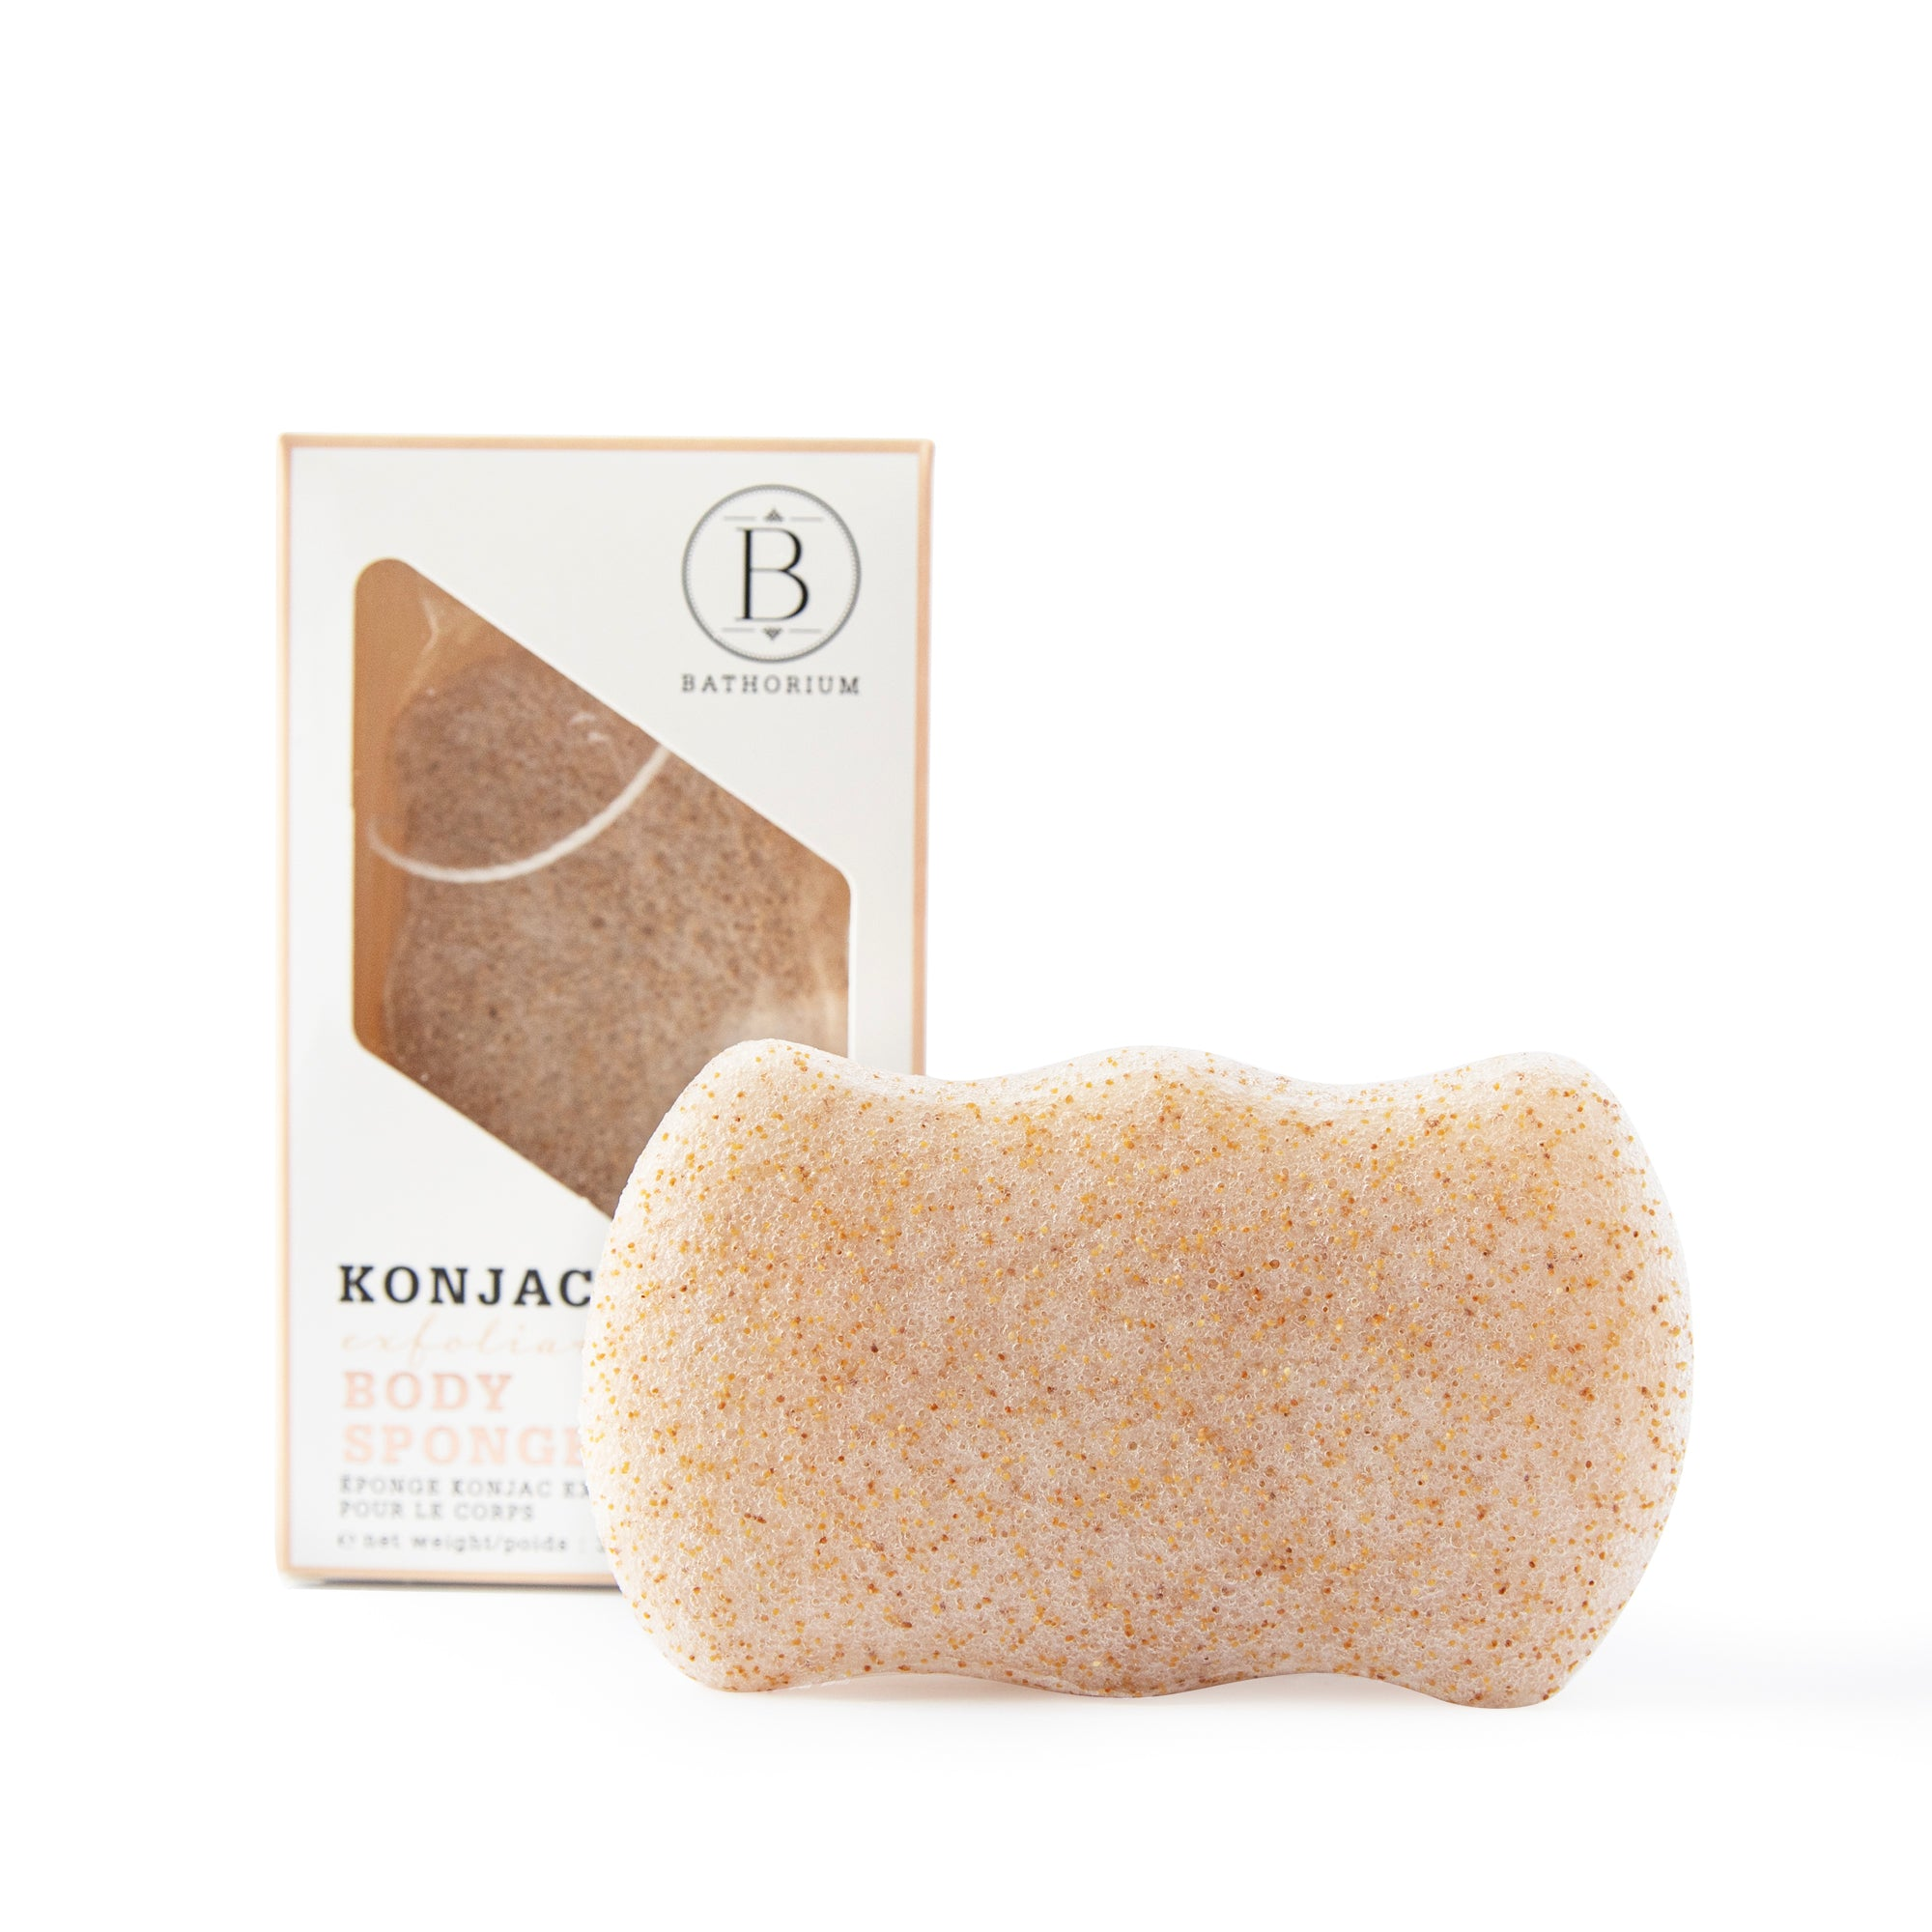 Walnut Body Konjac Sponge